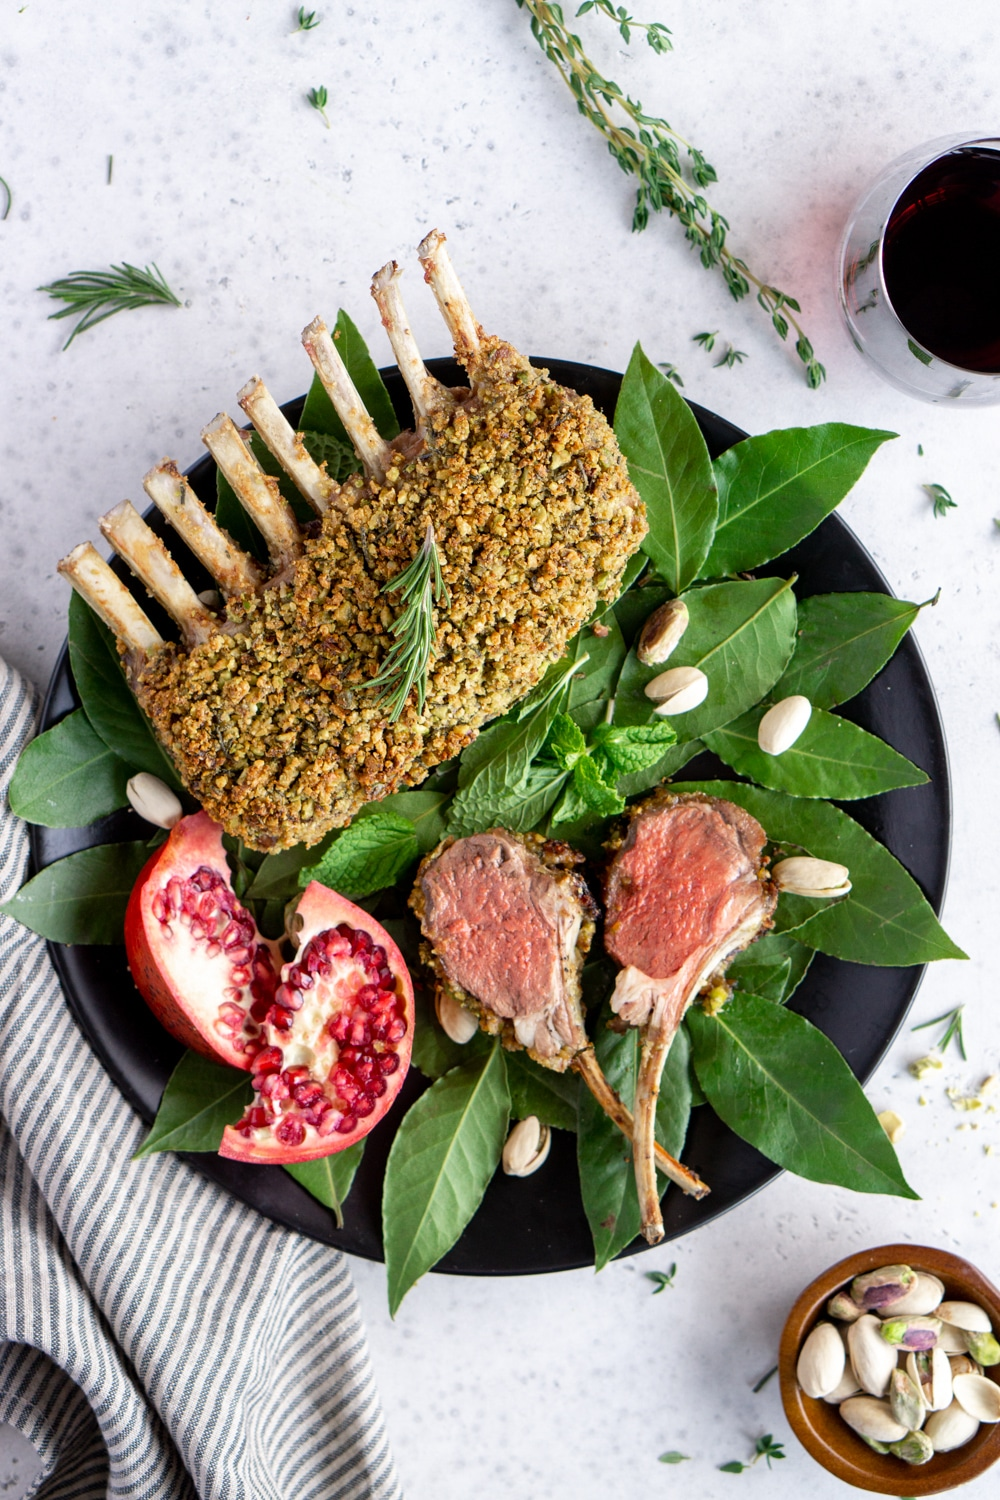 Roasted rack of lamb on a plate with two lamb chops